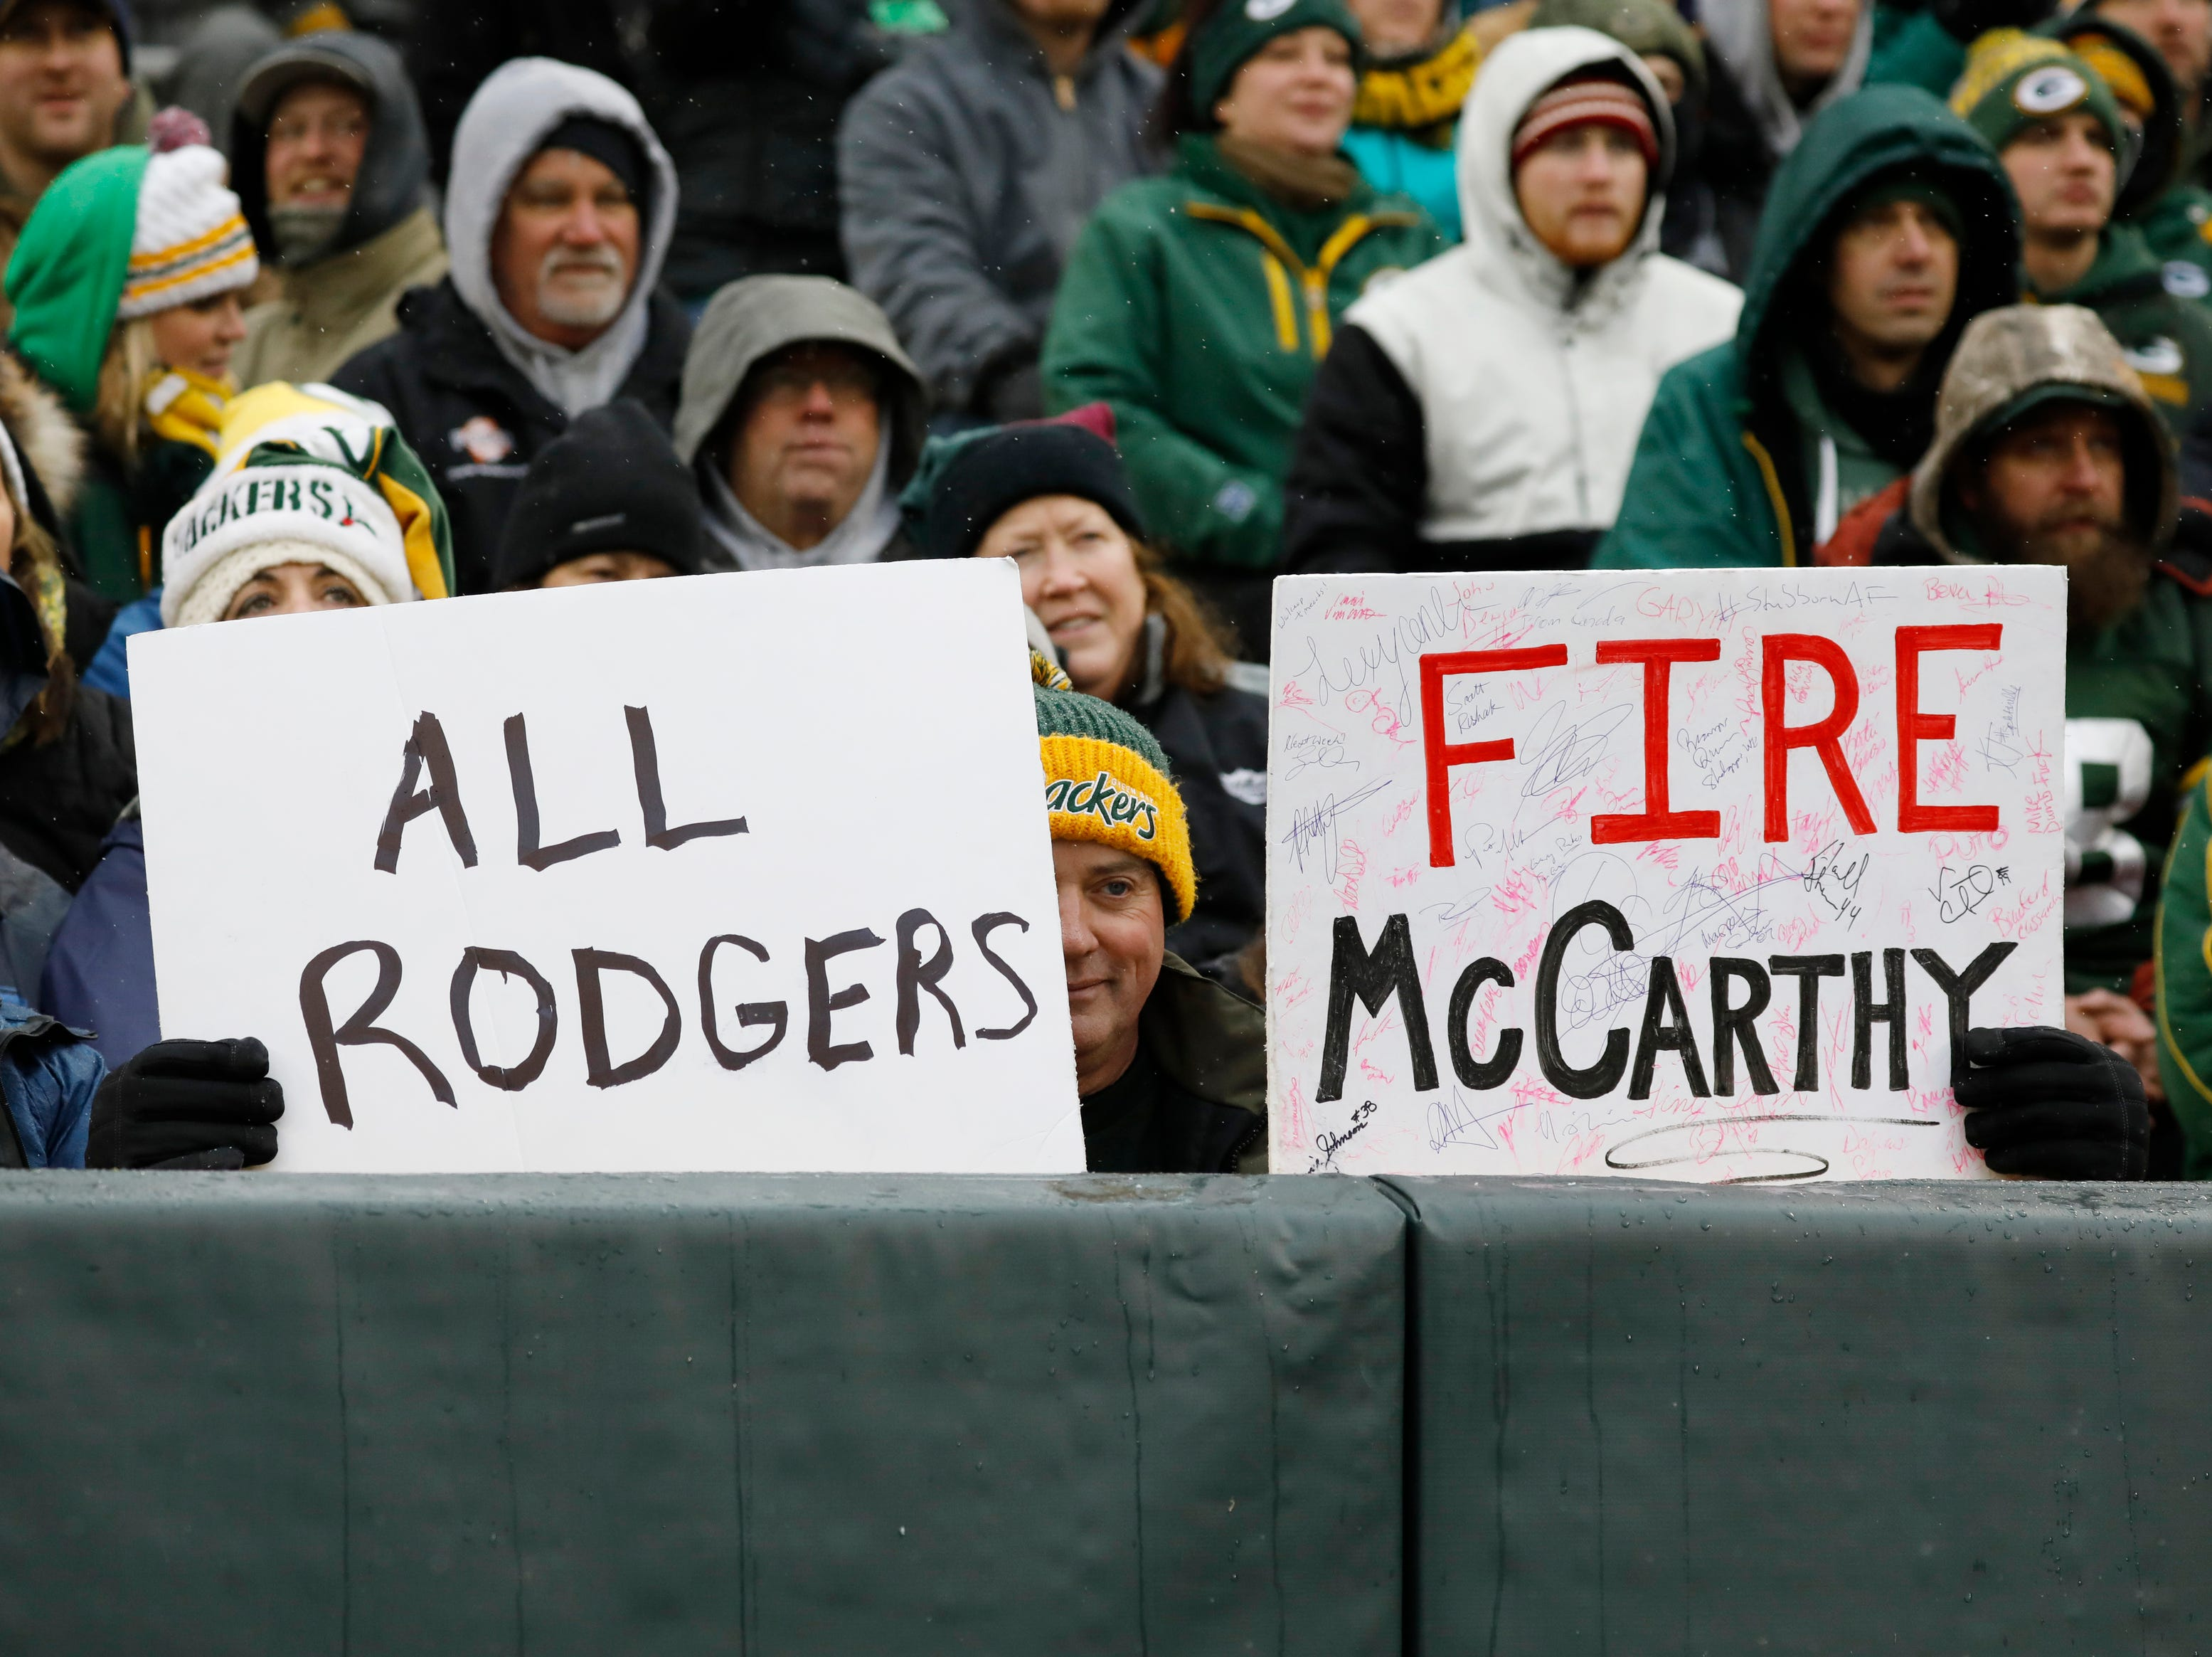 A fan holds up a sign during the fourth quarter of the Green Bay Packers the Arizona Cardinals Sunday, Dec. 2, 2018, in Green Bay, Wis. Arizona won 20-17. Green Bay head coach Mike McCarthy was fired after the game.